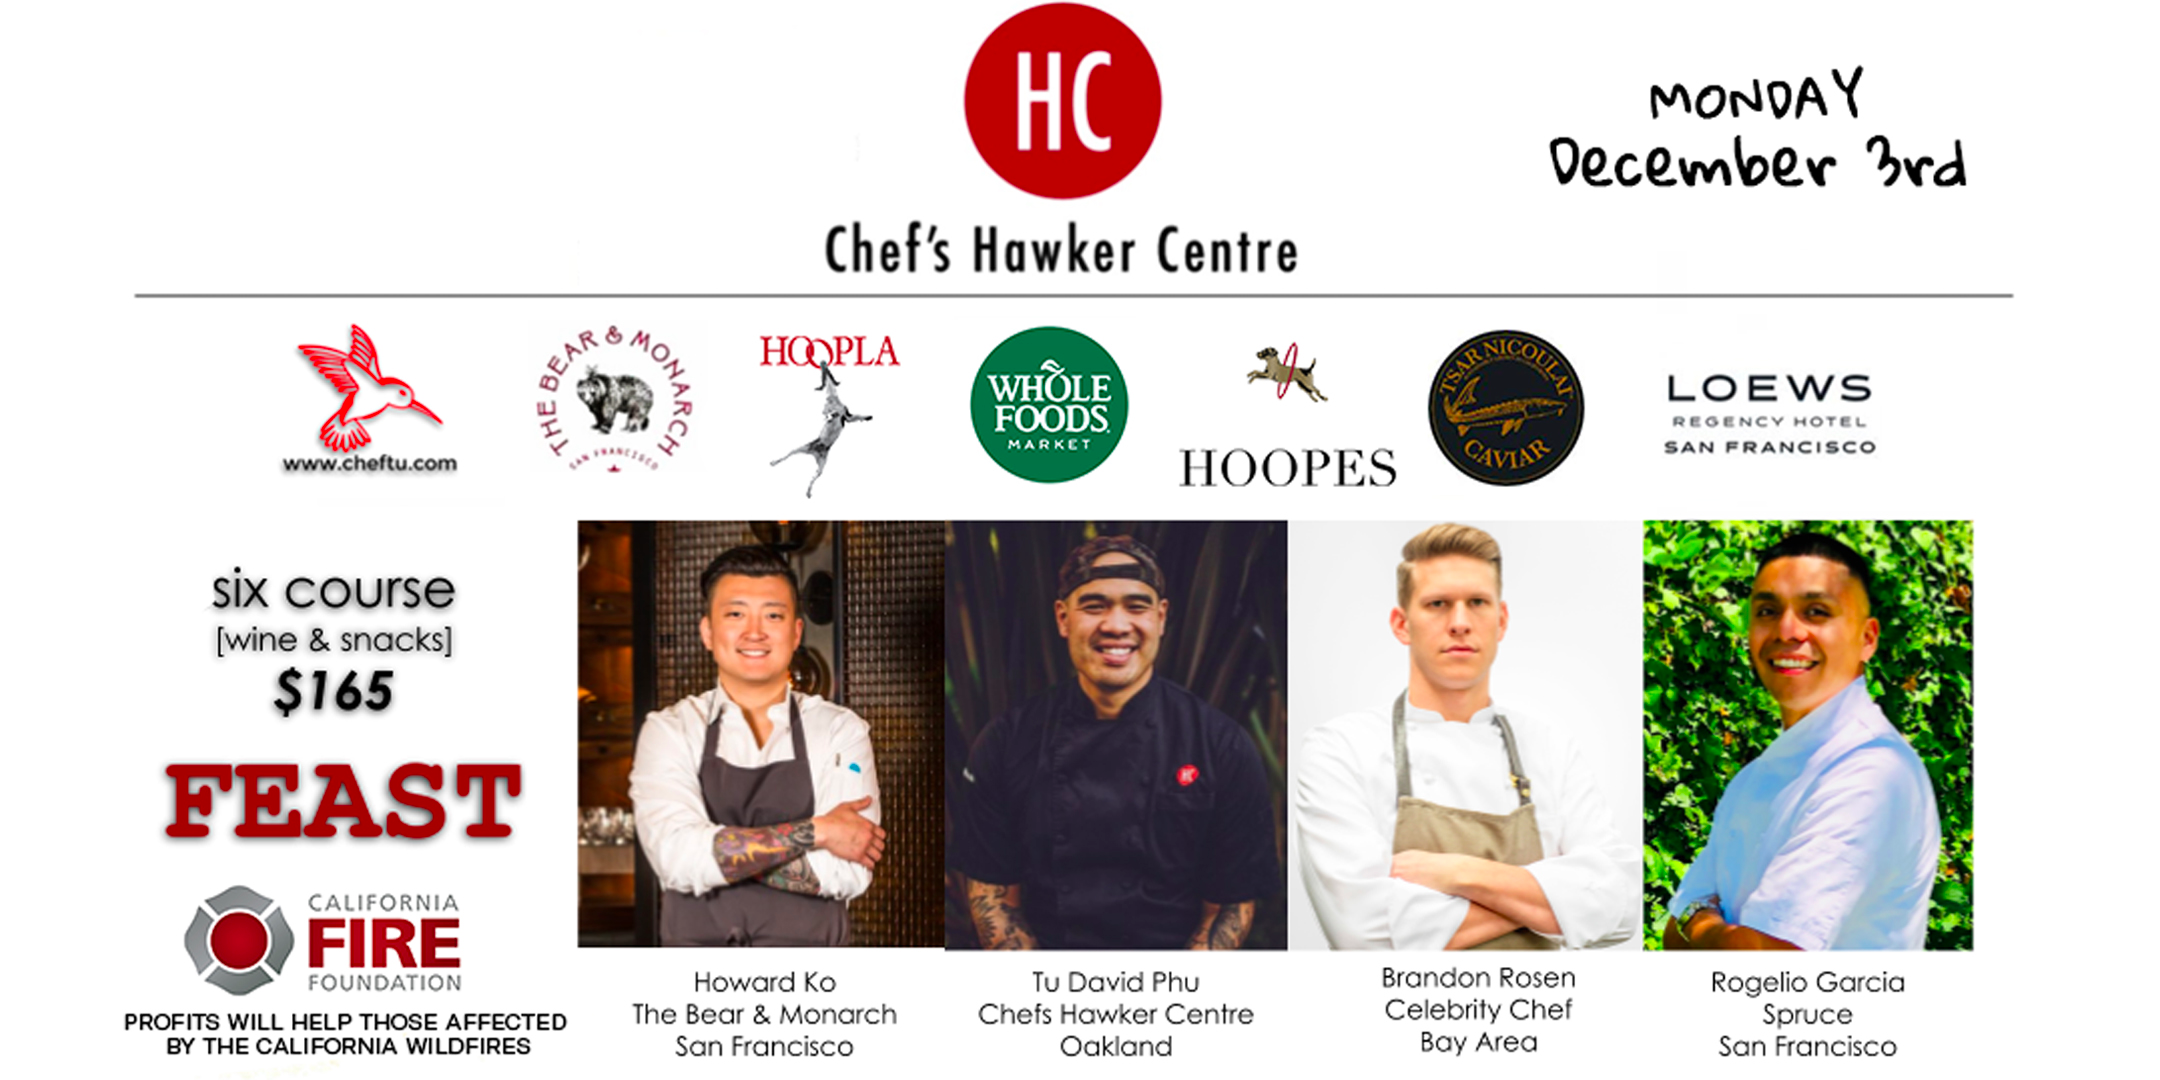 Howard Ko, Executive Chef of  The Bear & Monarch  is excited to partner with Chef's Hawker Centre for a memorable holiday feast for the senses.  Join us in the Bayview Terrace Presidential Suite at the  Loews Regency San Francisco  for canapes and libations. Followed by a 6 course plated dinner with wine pairing in The Bear & Monarch Private Dining Room.  All Star Chefs Howard Ko, Tu David Phu, Brandon Rosen and Rogelio Garcia together will cook their Heritage Holiday Dishes.  Portions of the night's proceeds will be donated to the victims of the Northern California fires.